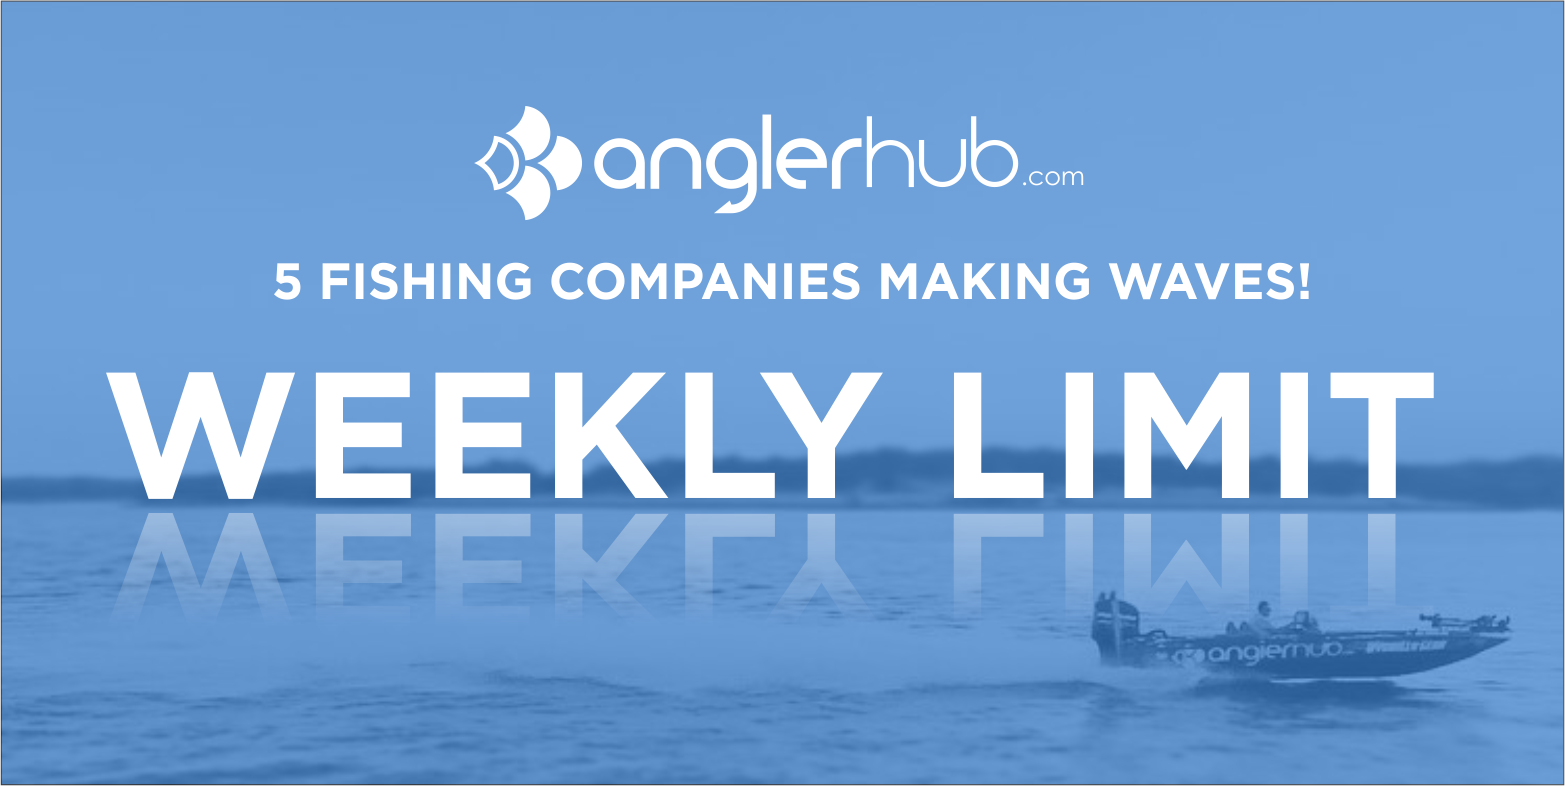 Five fishing companies making waves!